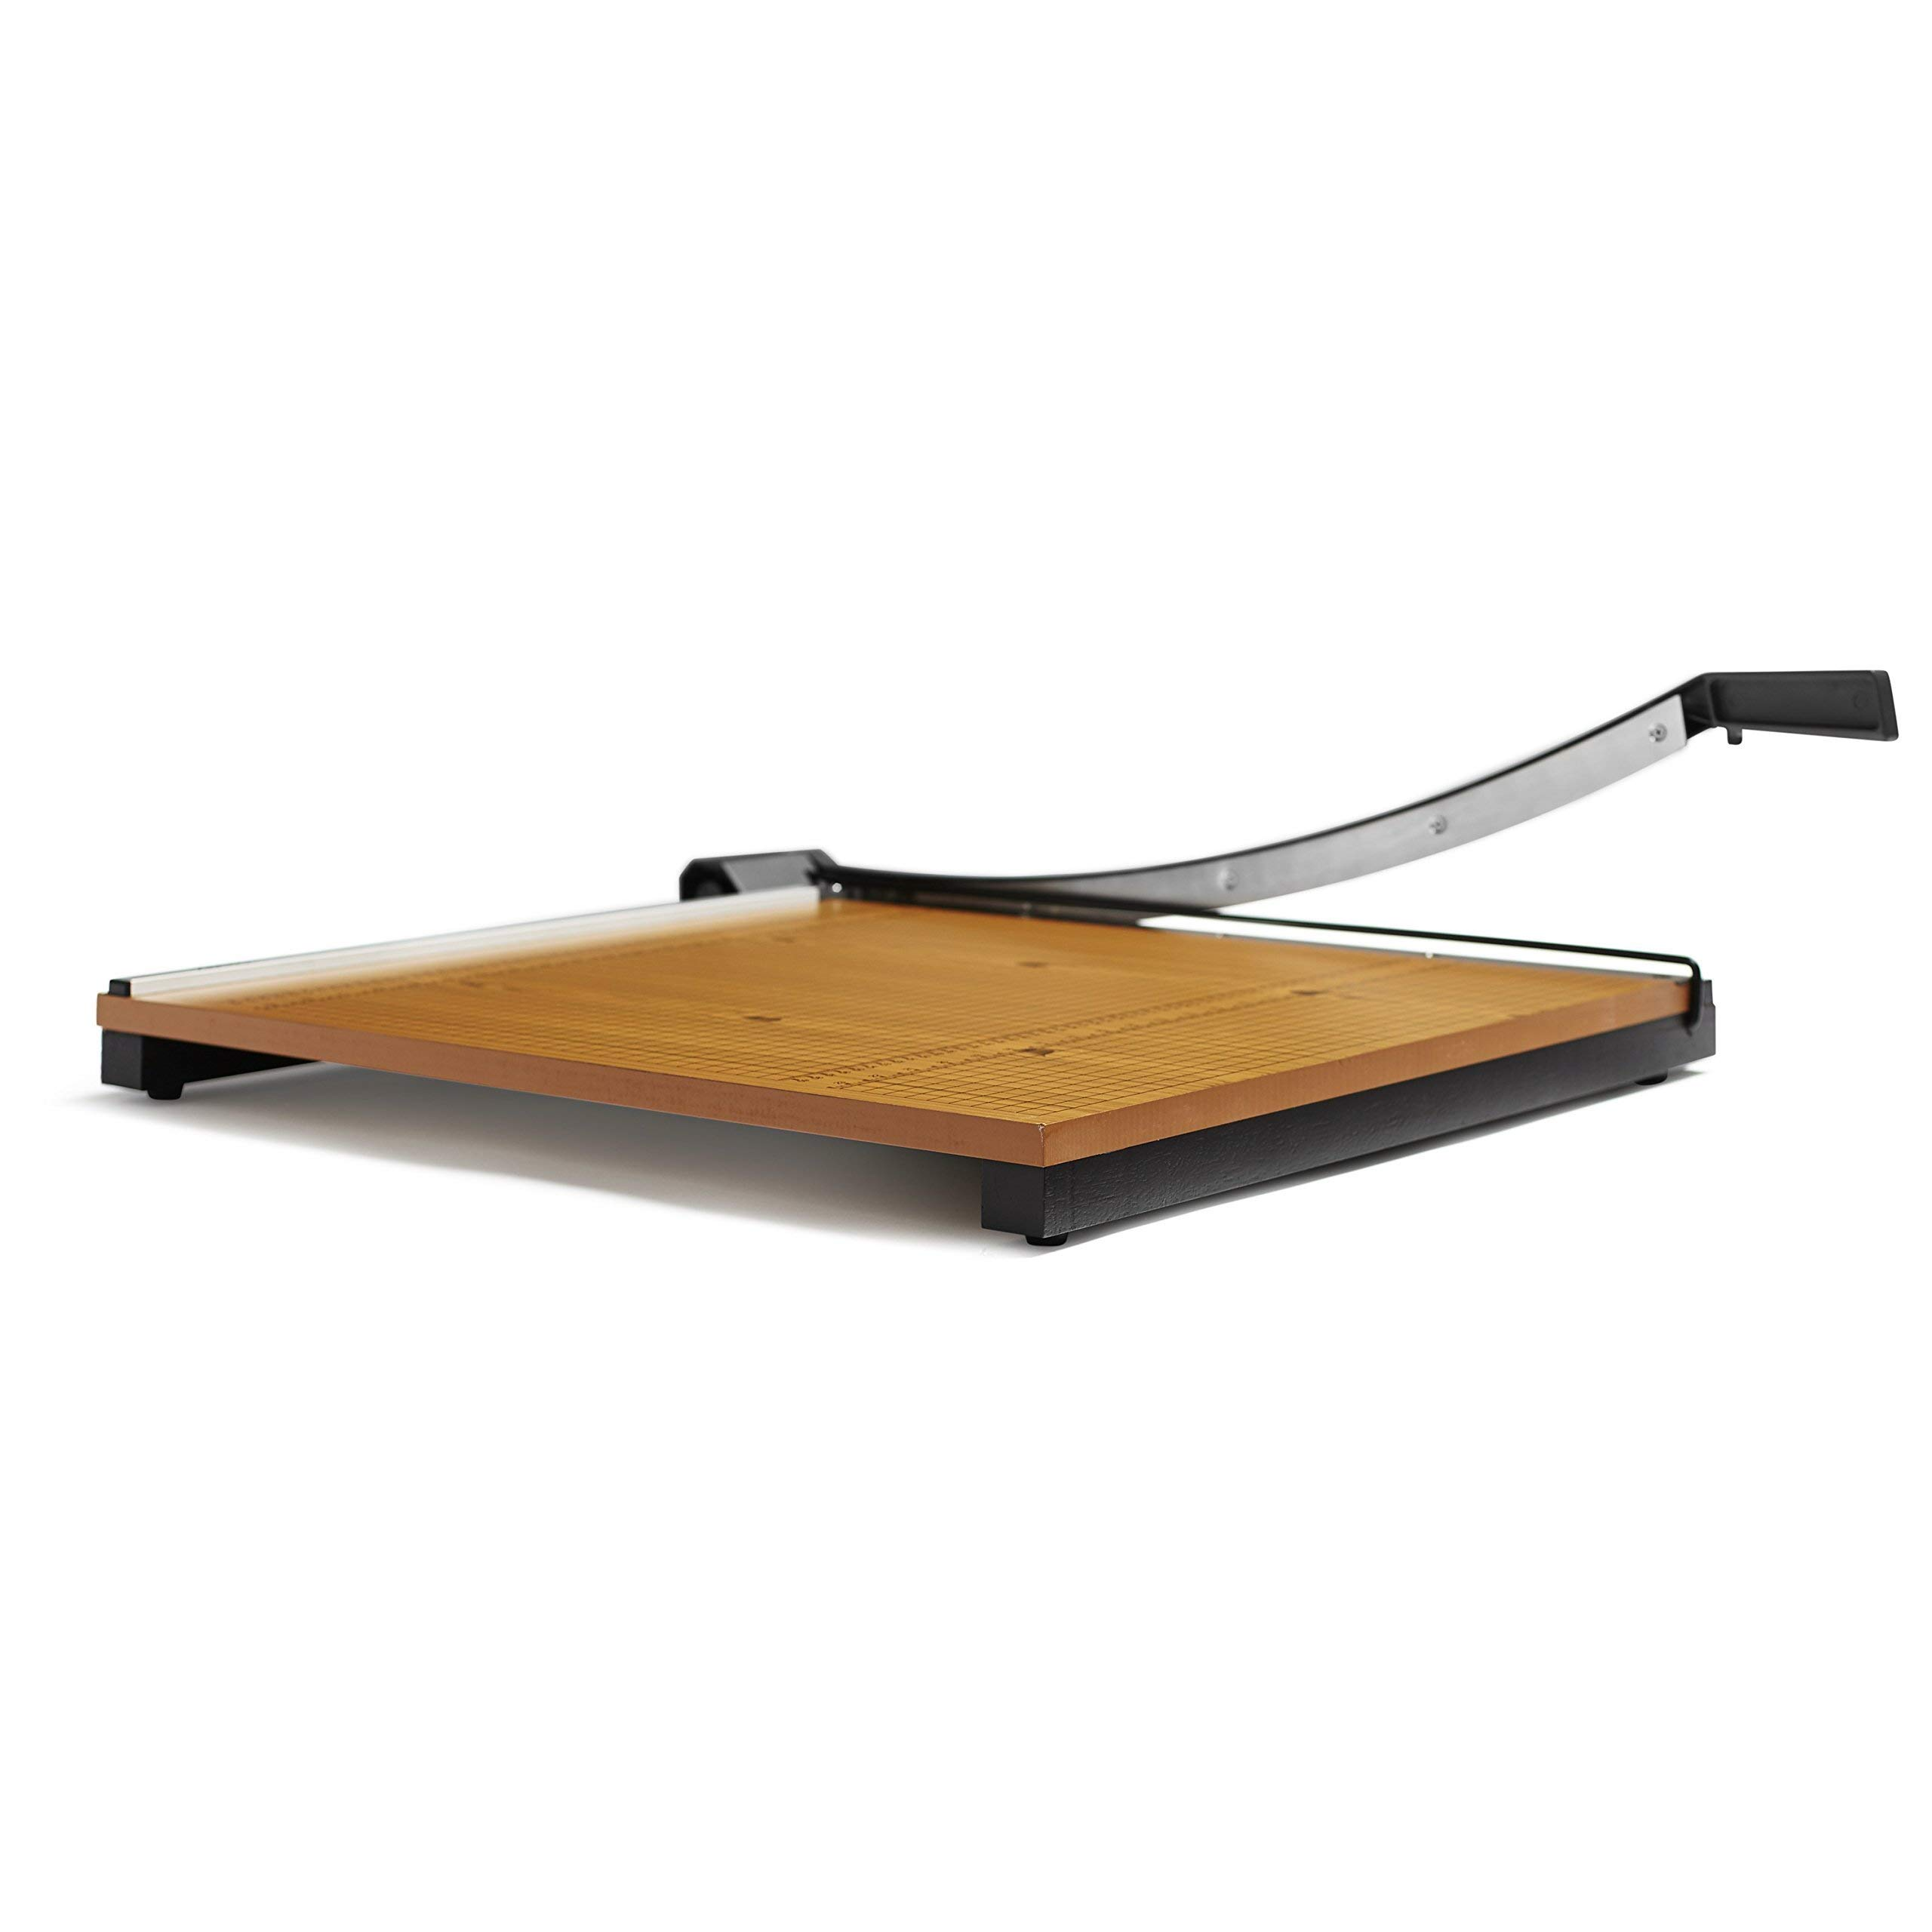 X-ACTO 24x24 Commercial Grade Square Guillotine Trimmer (Renewed) by X-Acto